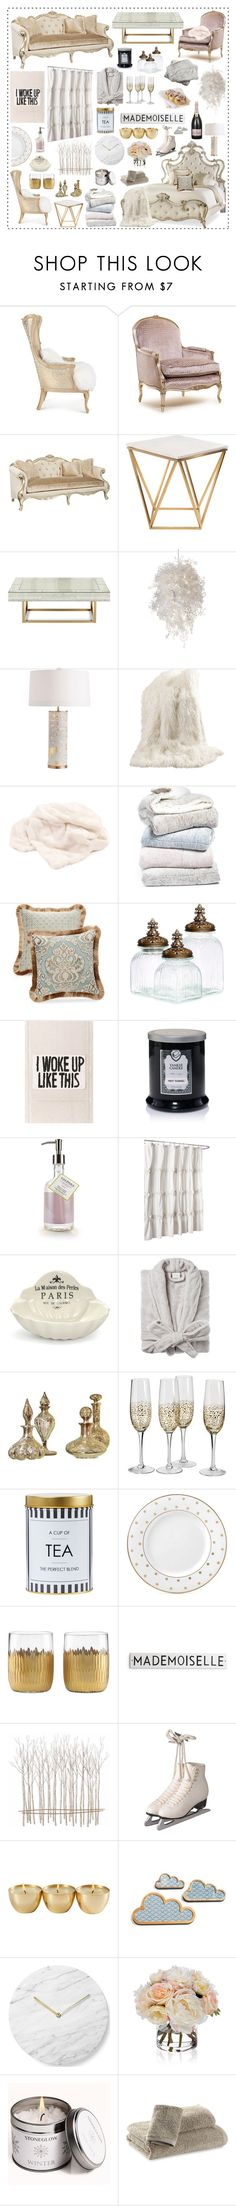 """Kappa Kappa Thau // scream queens home inspo // top home set 8/1/16"" by asterismos-x ❤ liked on Polyvore featuring interior, interiors, interior design, home, home decor, interior decorating, Massoud, BYRON, Universal Lighting and Decor and Nuevo"